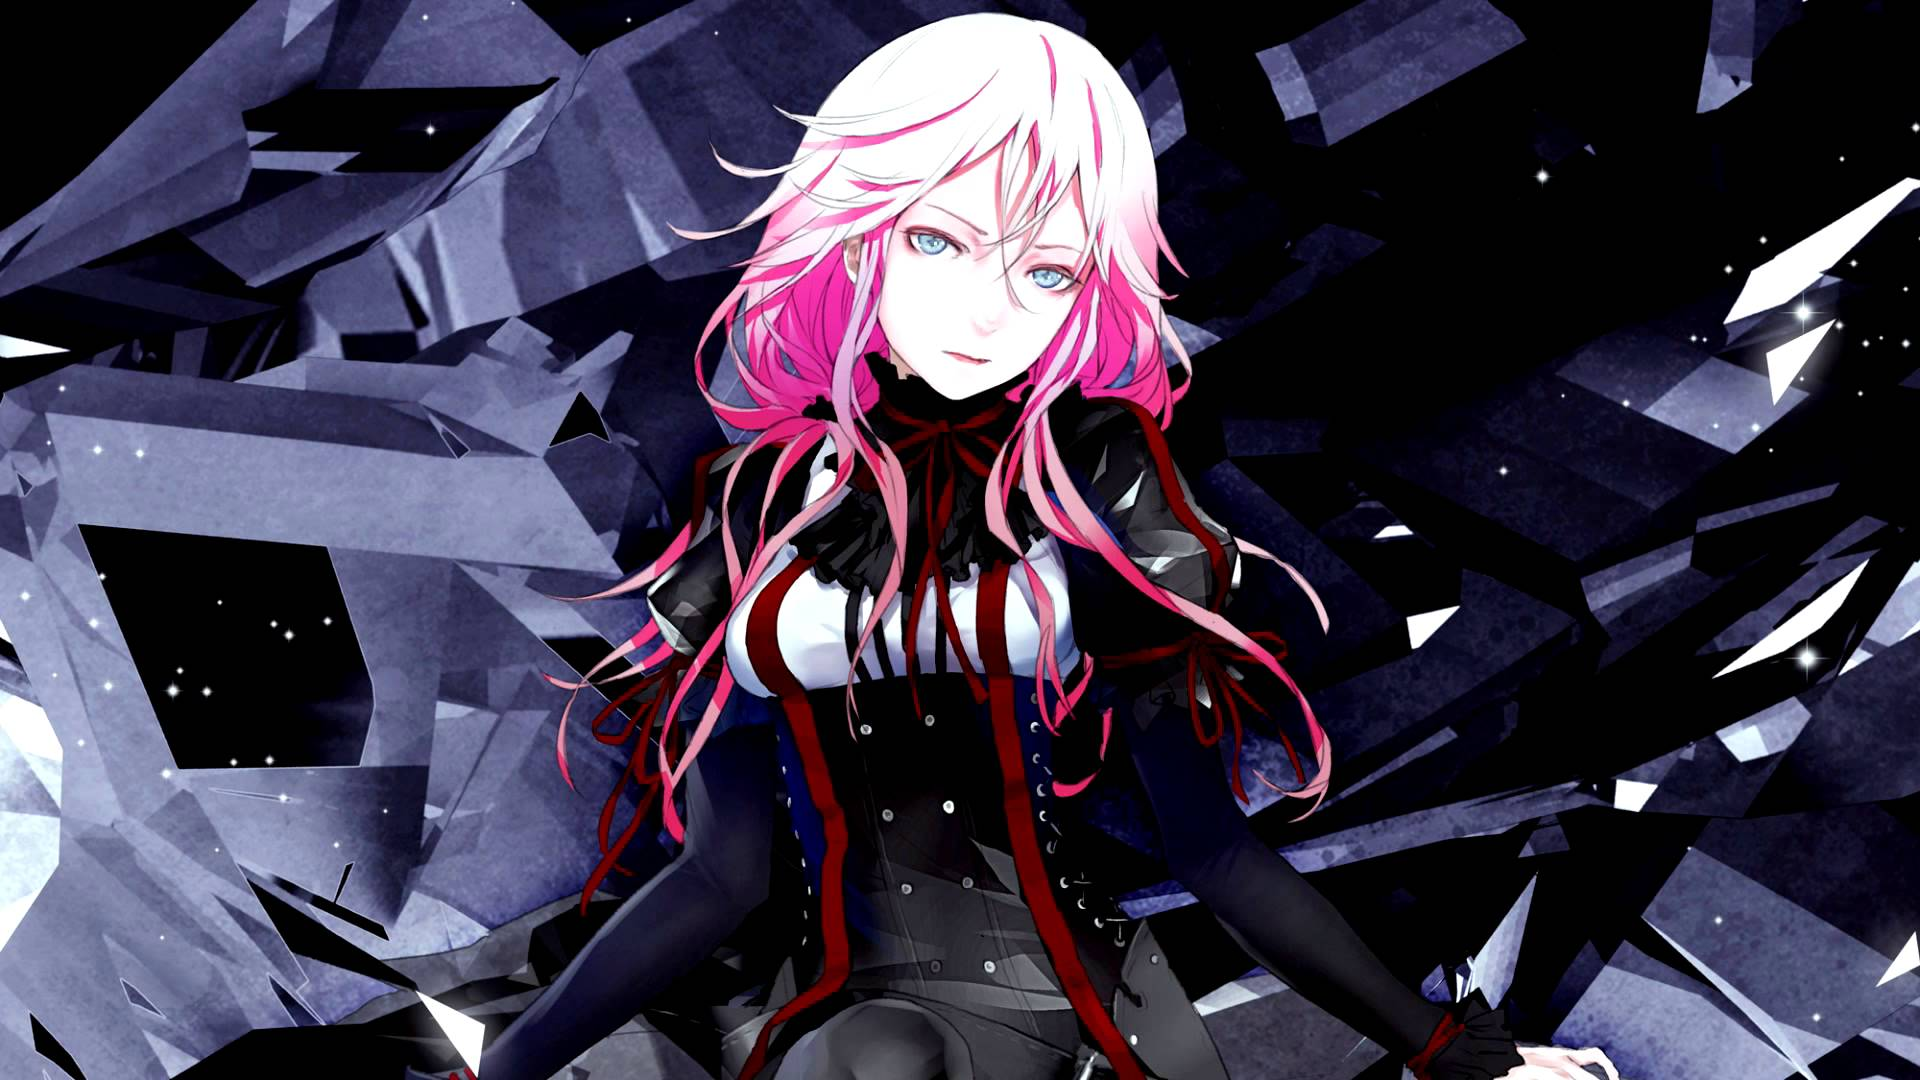 Guilty Crown Wallpaper Inori: FANDOM Powered By Wikia